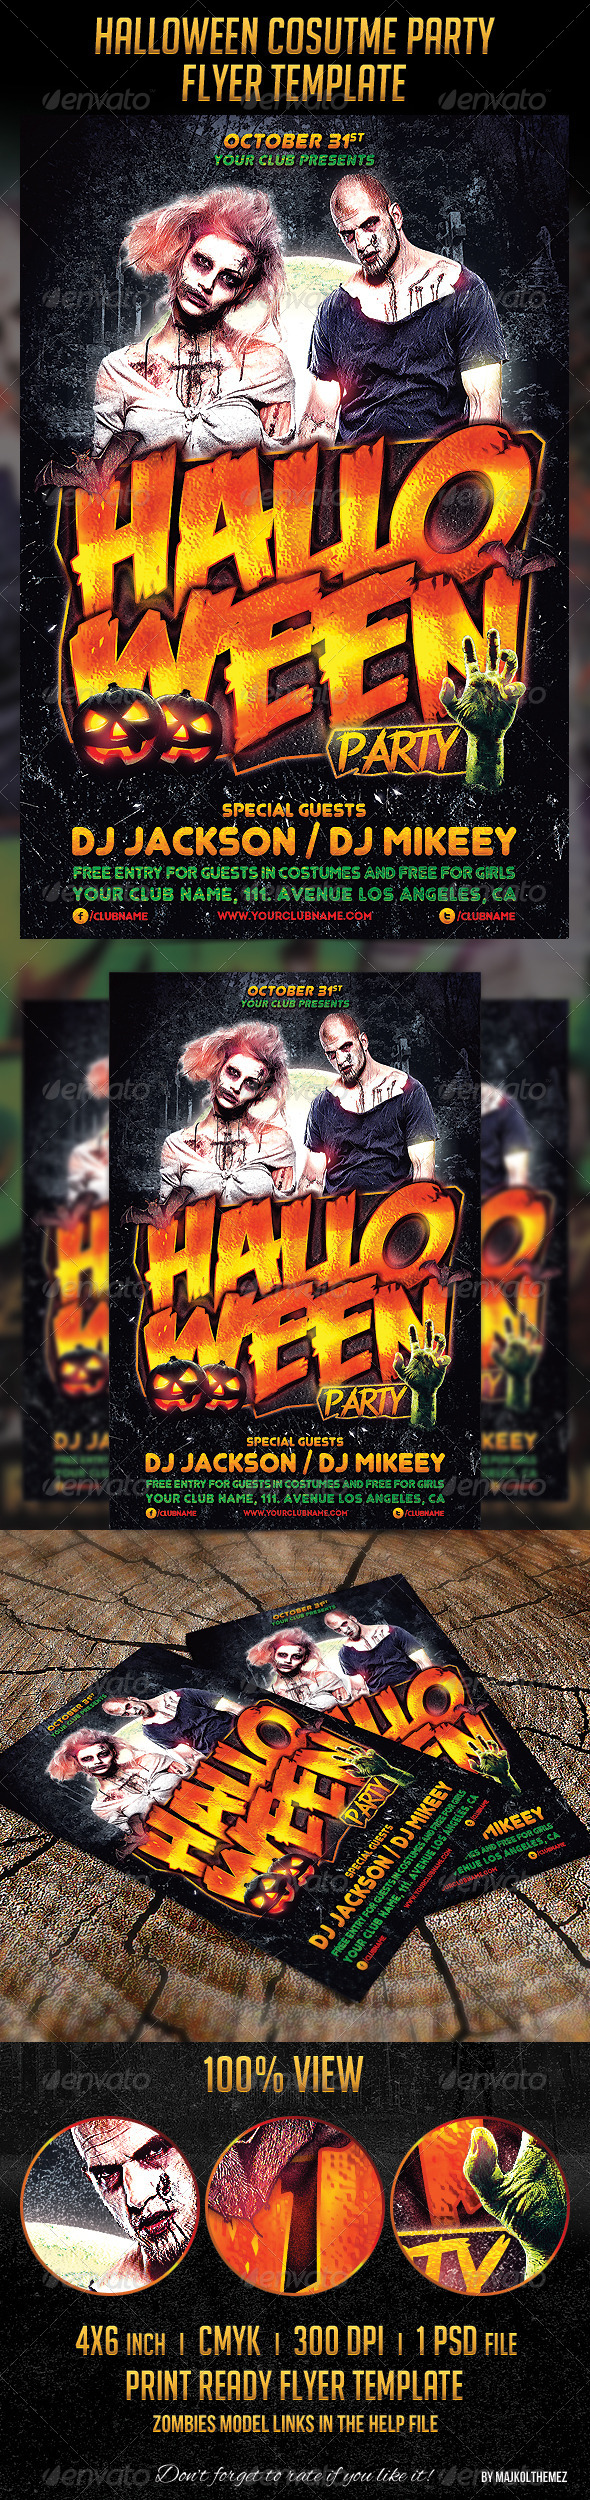 GraphicRiver Halloween Costume Party Flyer 5745021